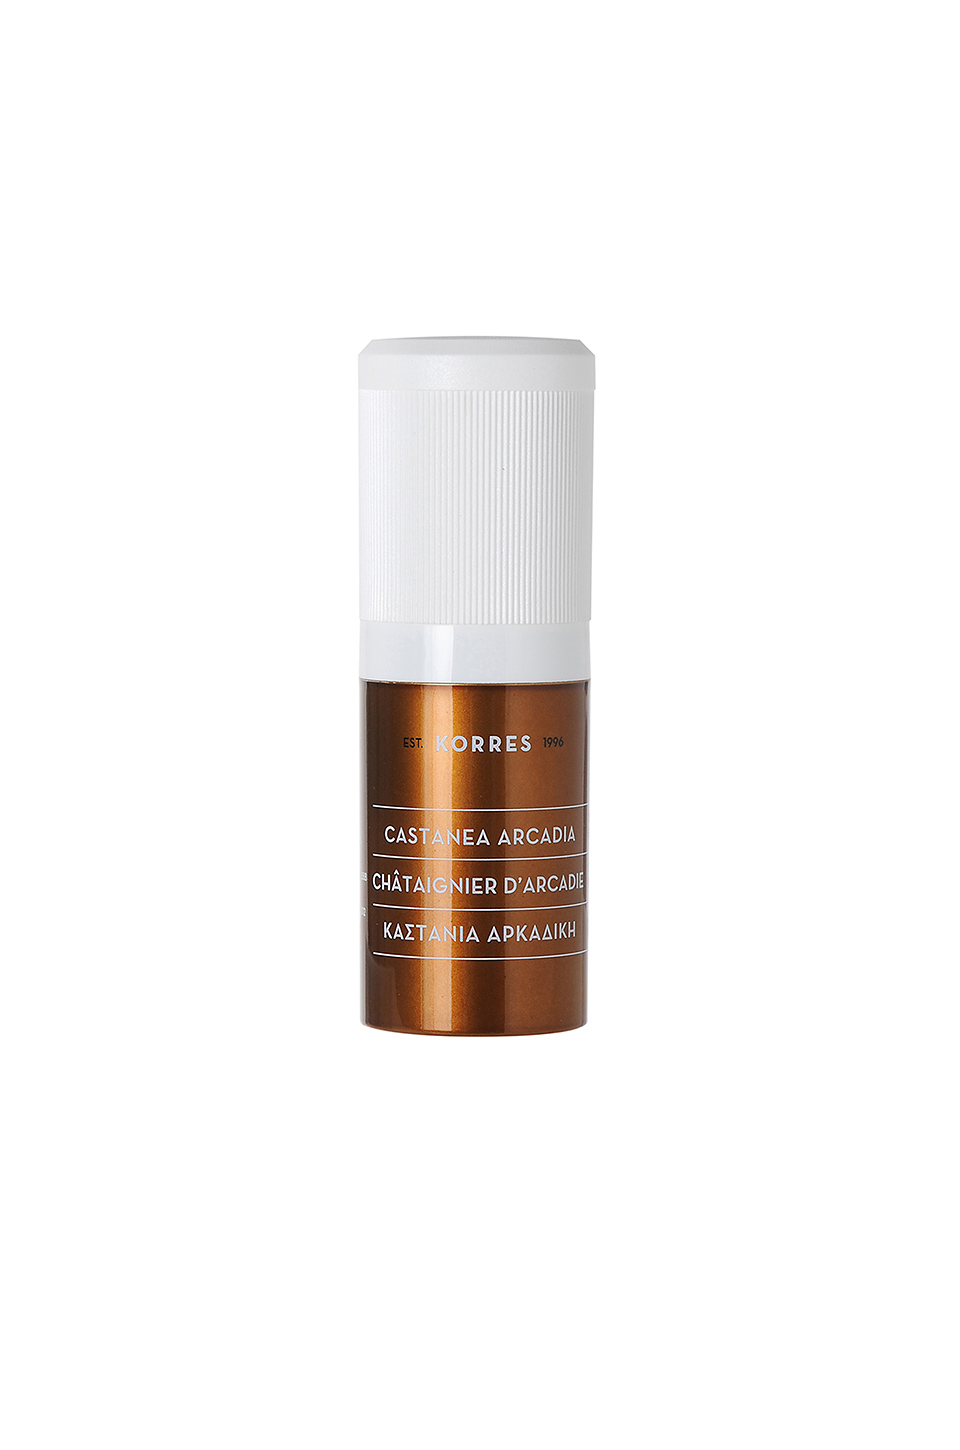 Korres Castanea Arcadia Eye Cream in